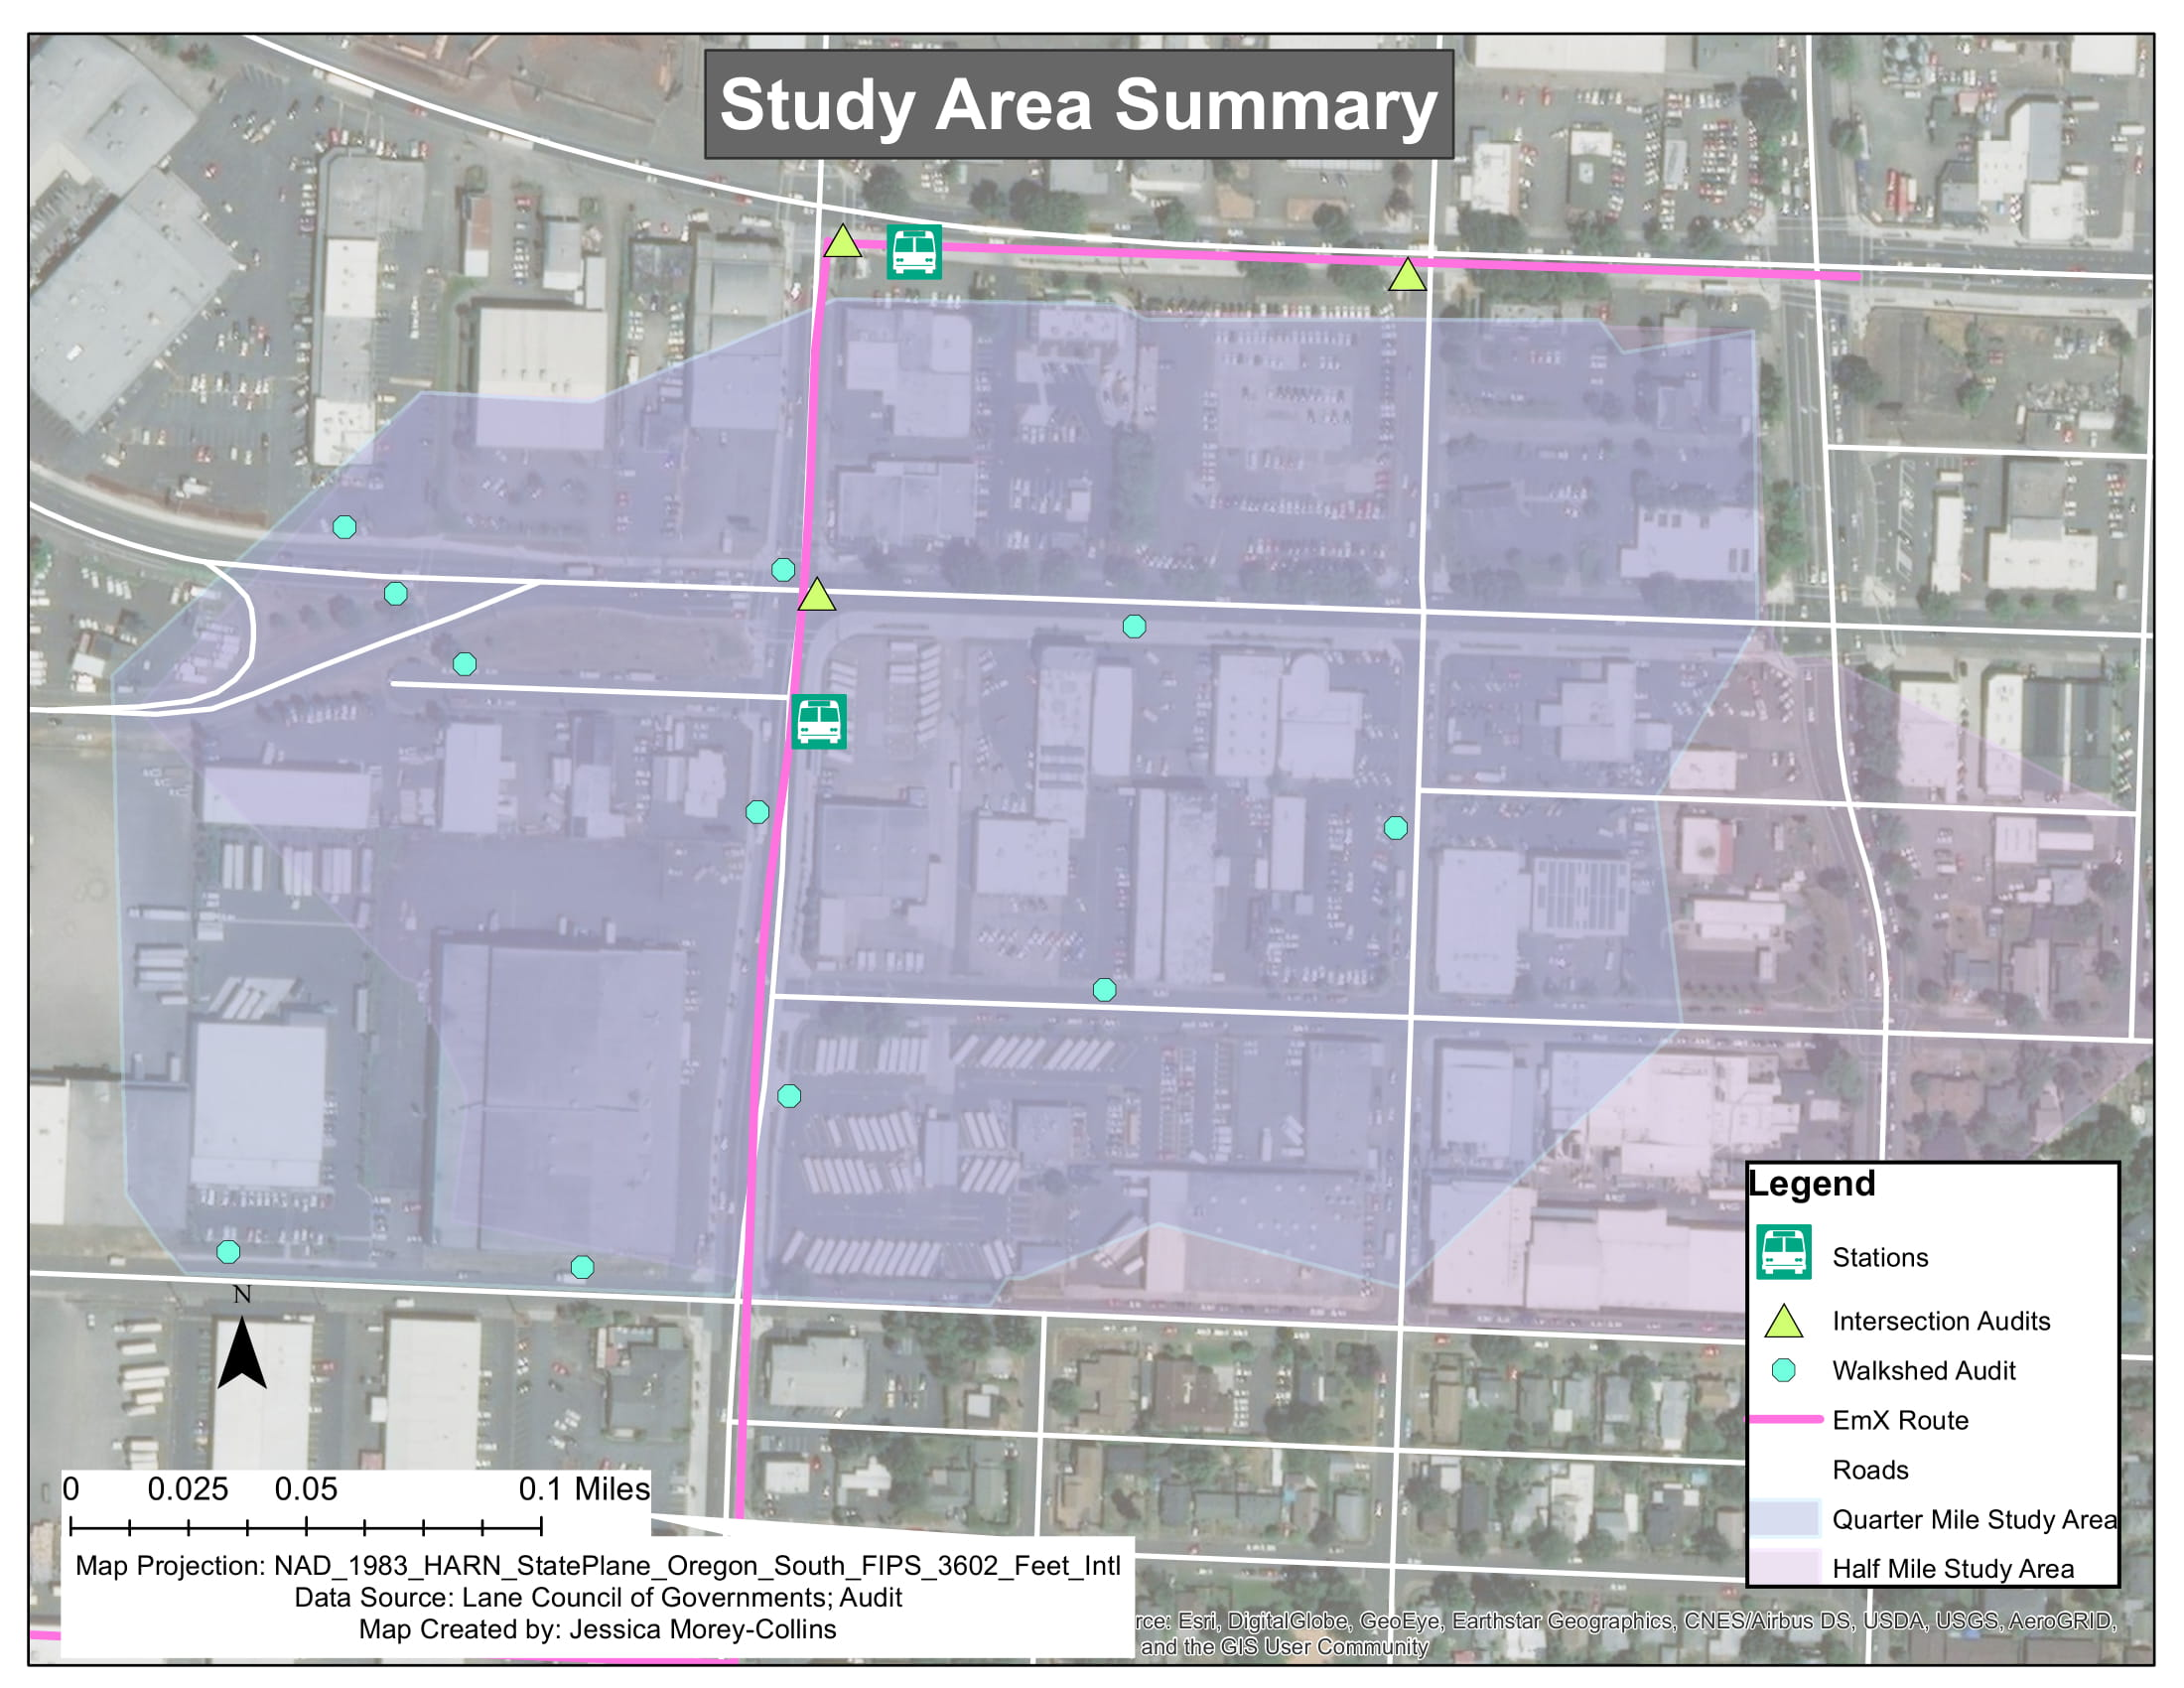 Study area summary for environmental analysis of a new public transportation line in Eugene, Oregon.